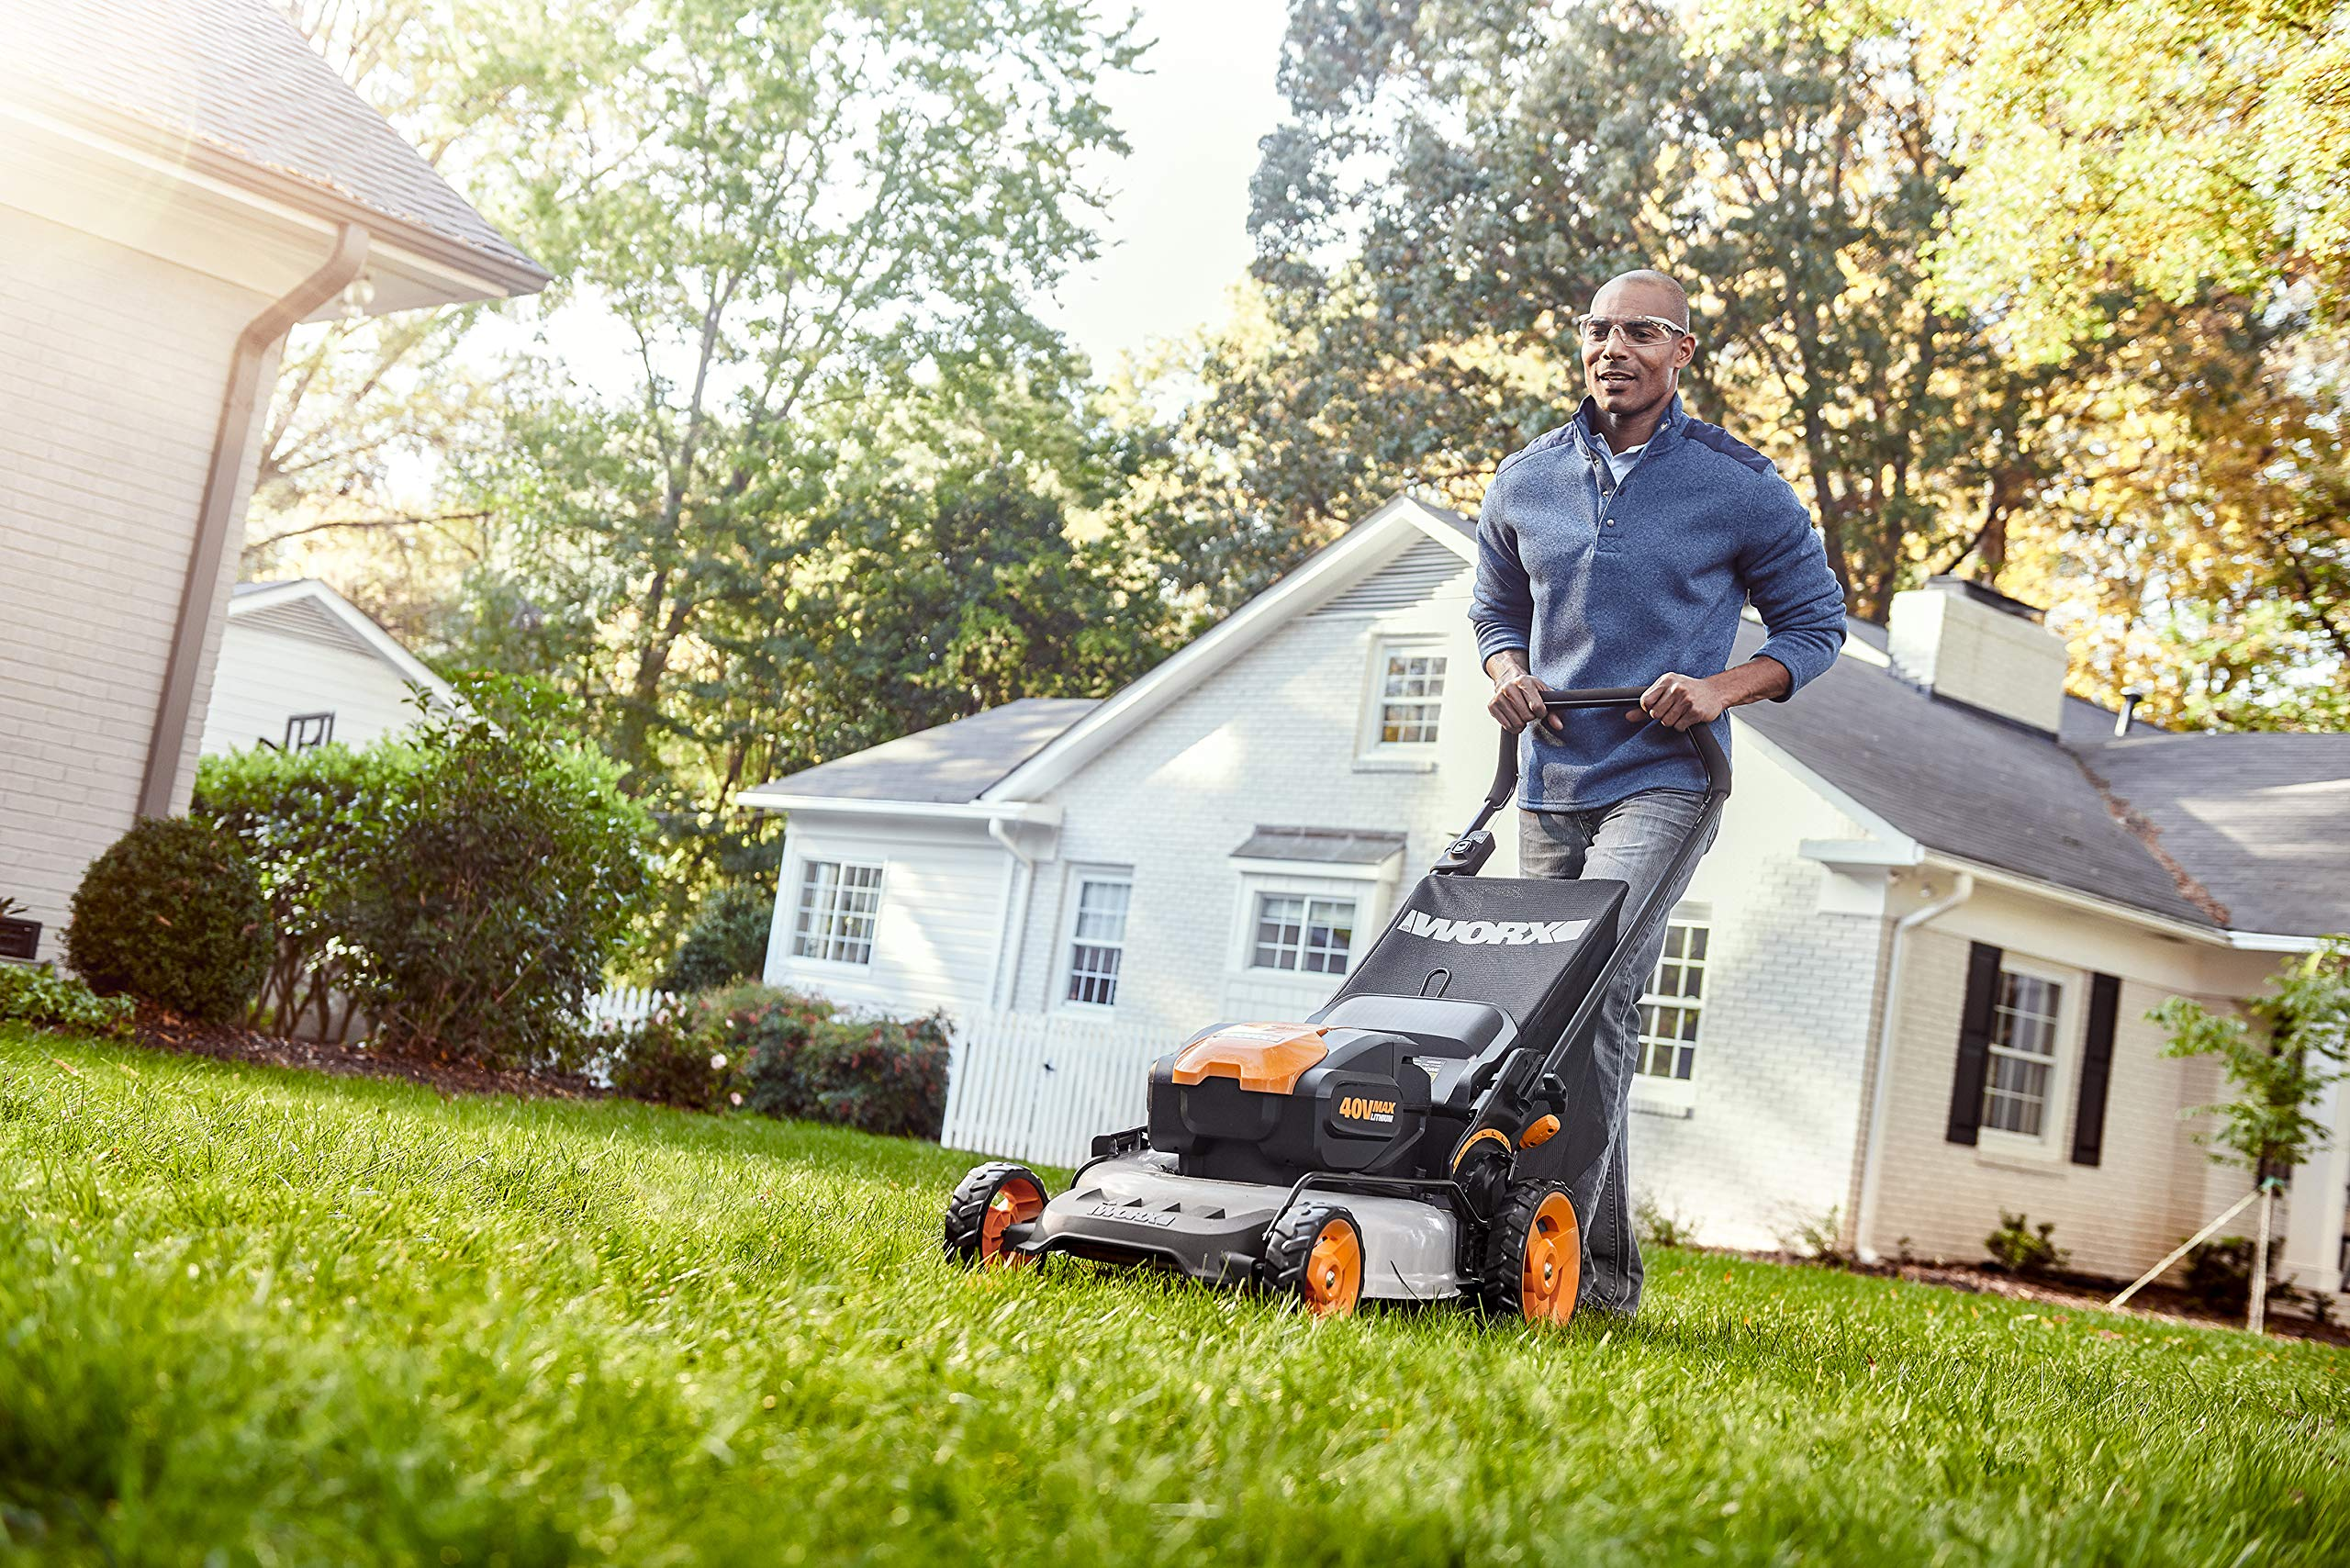 "WORX WG751 40V 19'' Cordless Lawn Mower, 2 Batteries & Charger Included, Black and Orange 6 Our 20"" 40V PowerShare mower comes with 2 rechargeable 20V 5.0Ah batteries that deliver 40V of rugged mowing power Steel makes all the difference. It lasts longer and performs better on undulating terrain. And with 20"" of it, you'll make fewer passes on your lawn Worx Power Share is compatible with all Worx 20v and 40v tools, outdoor power and lifestyle products"